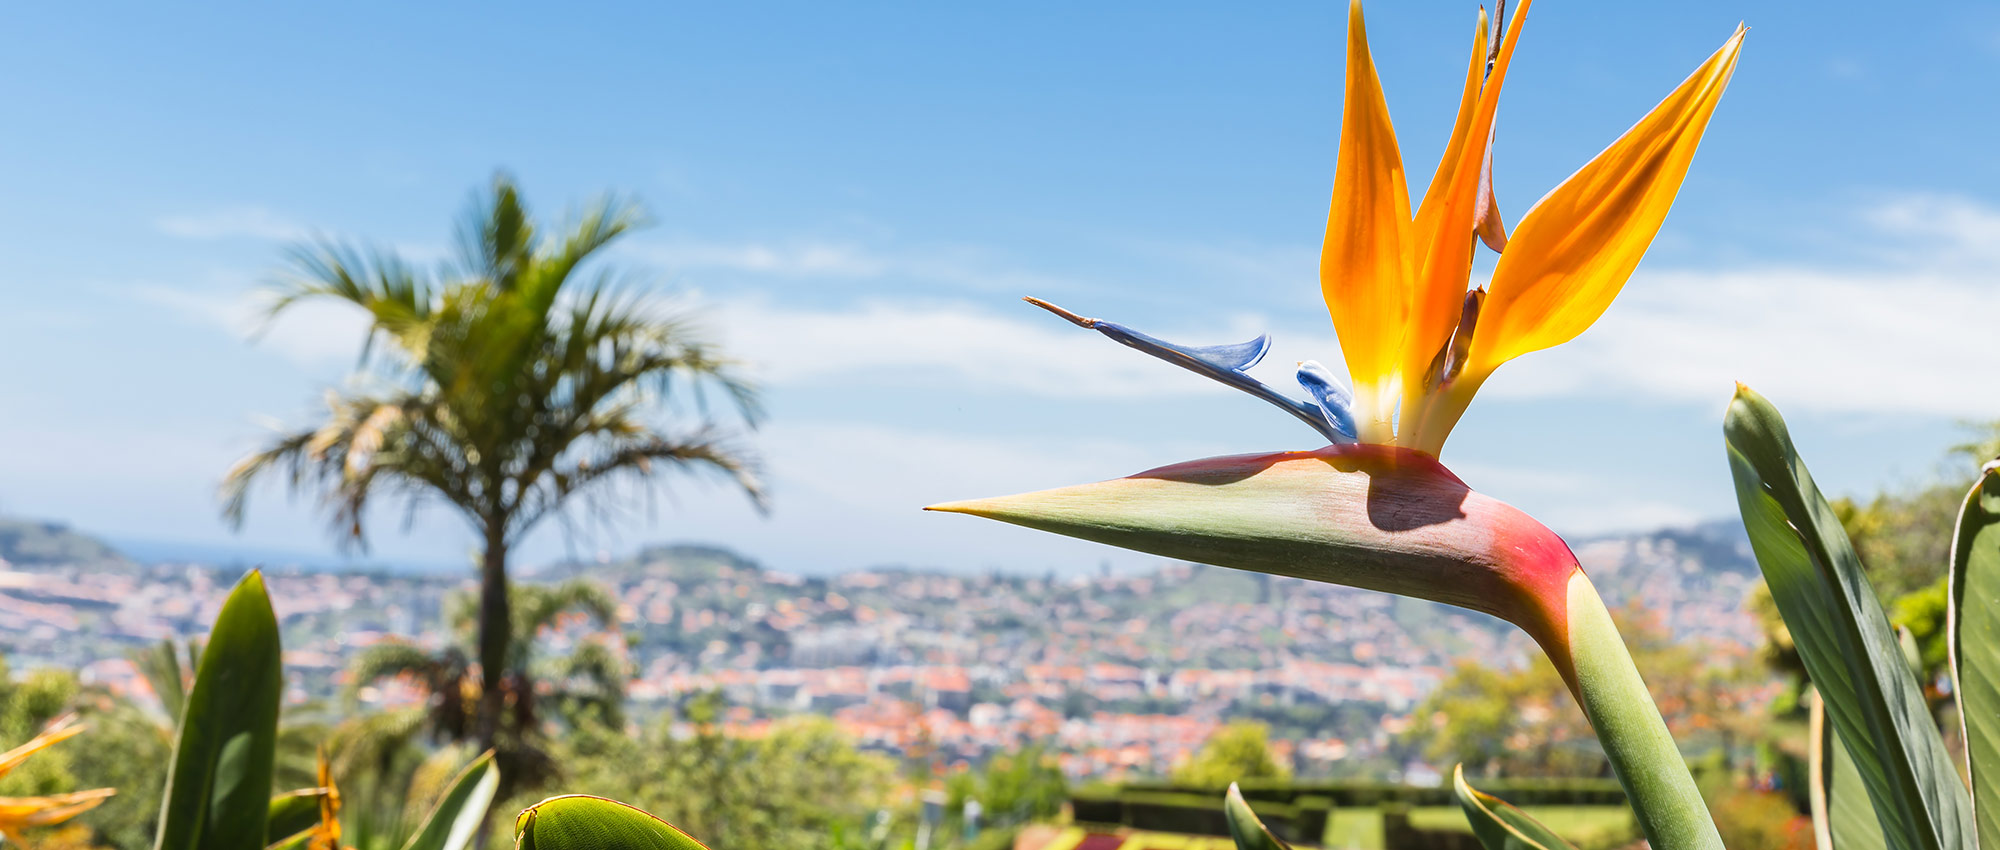 Bird of Paradise plant with view in distance